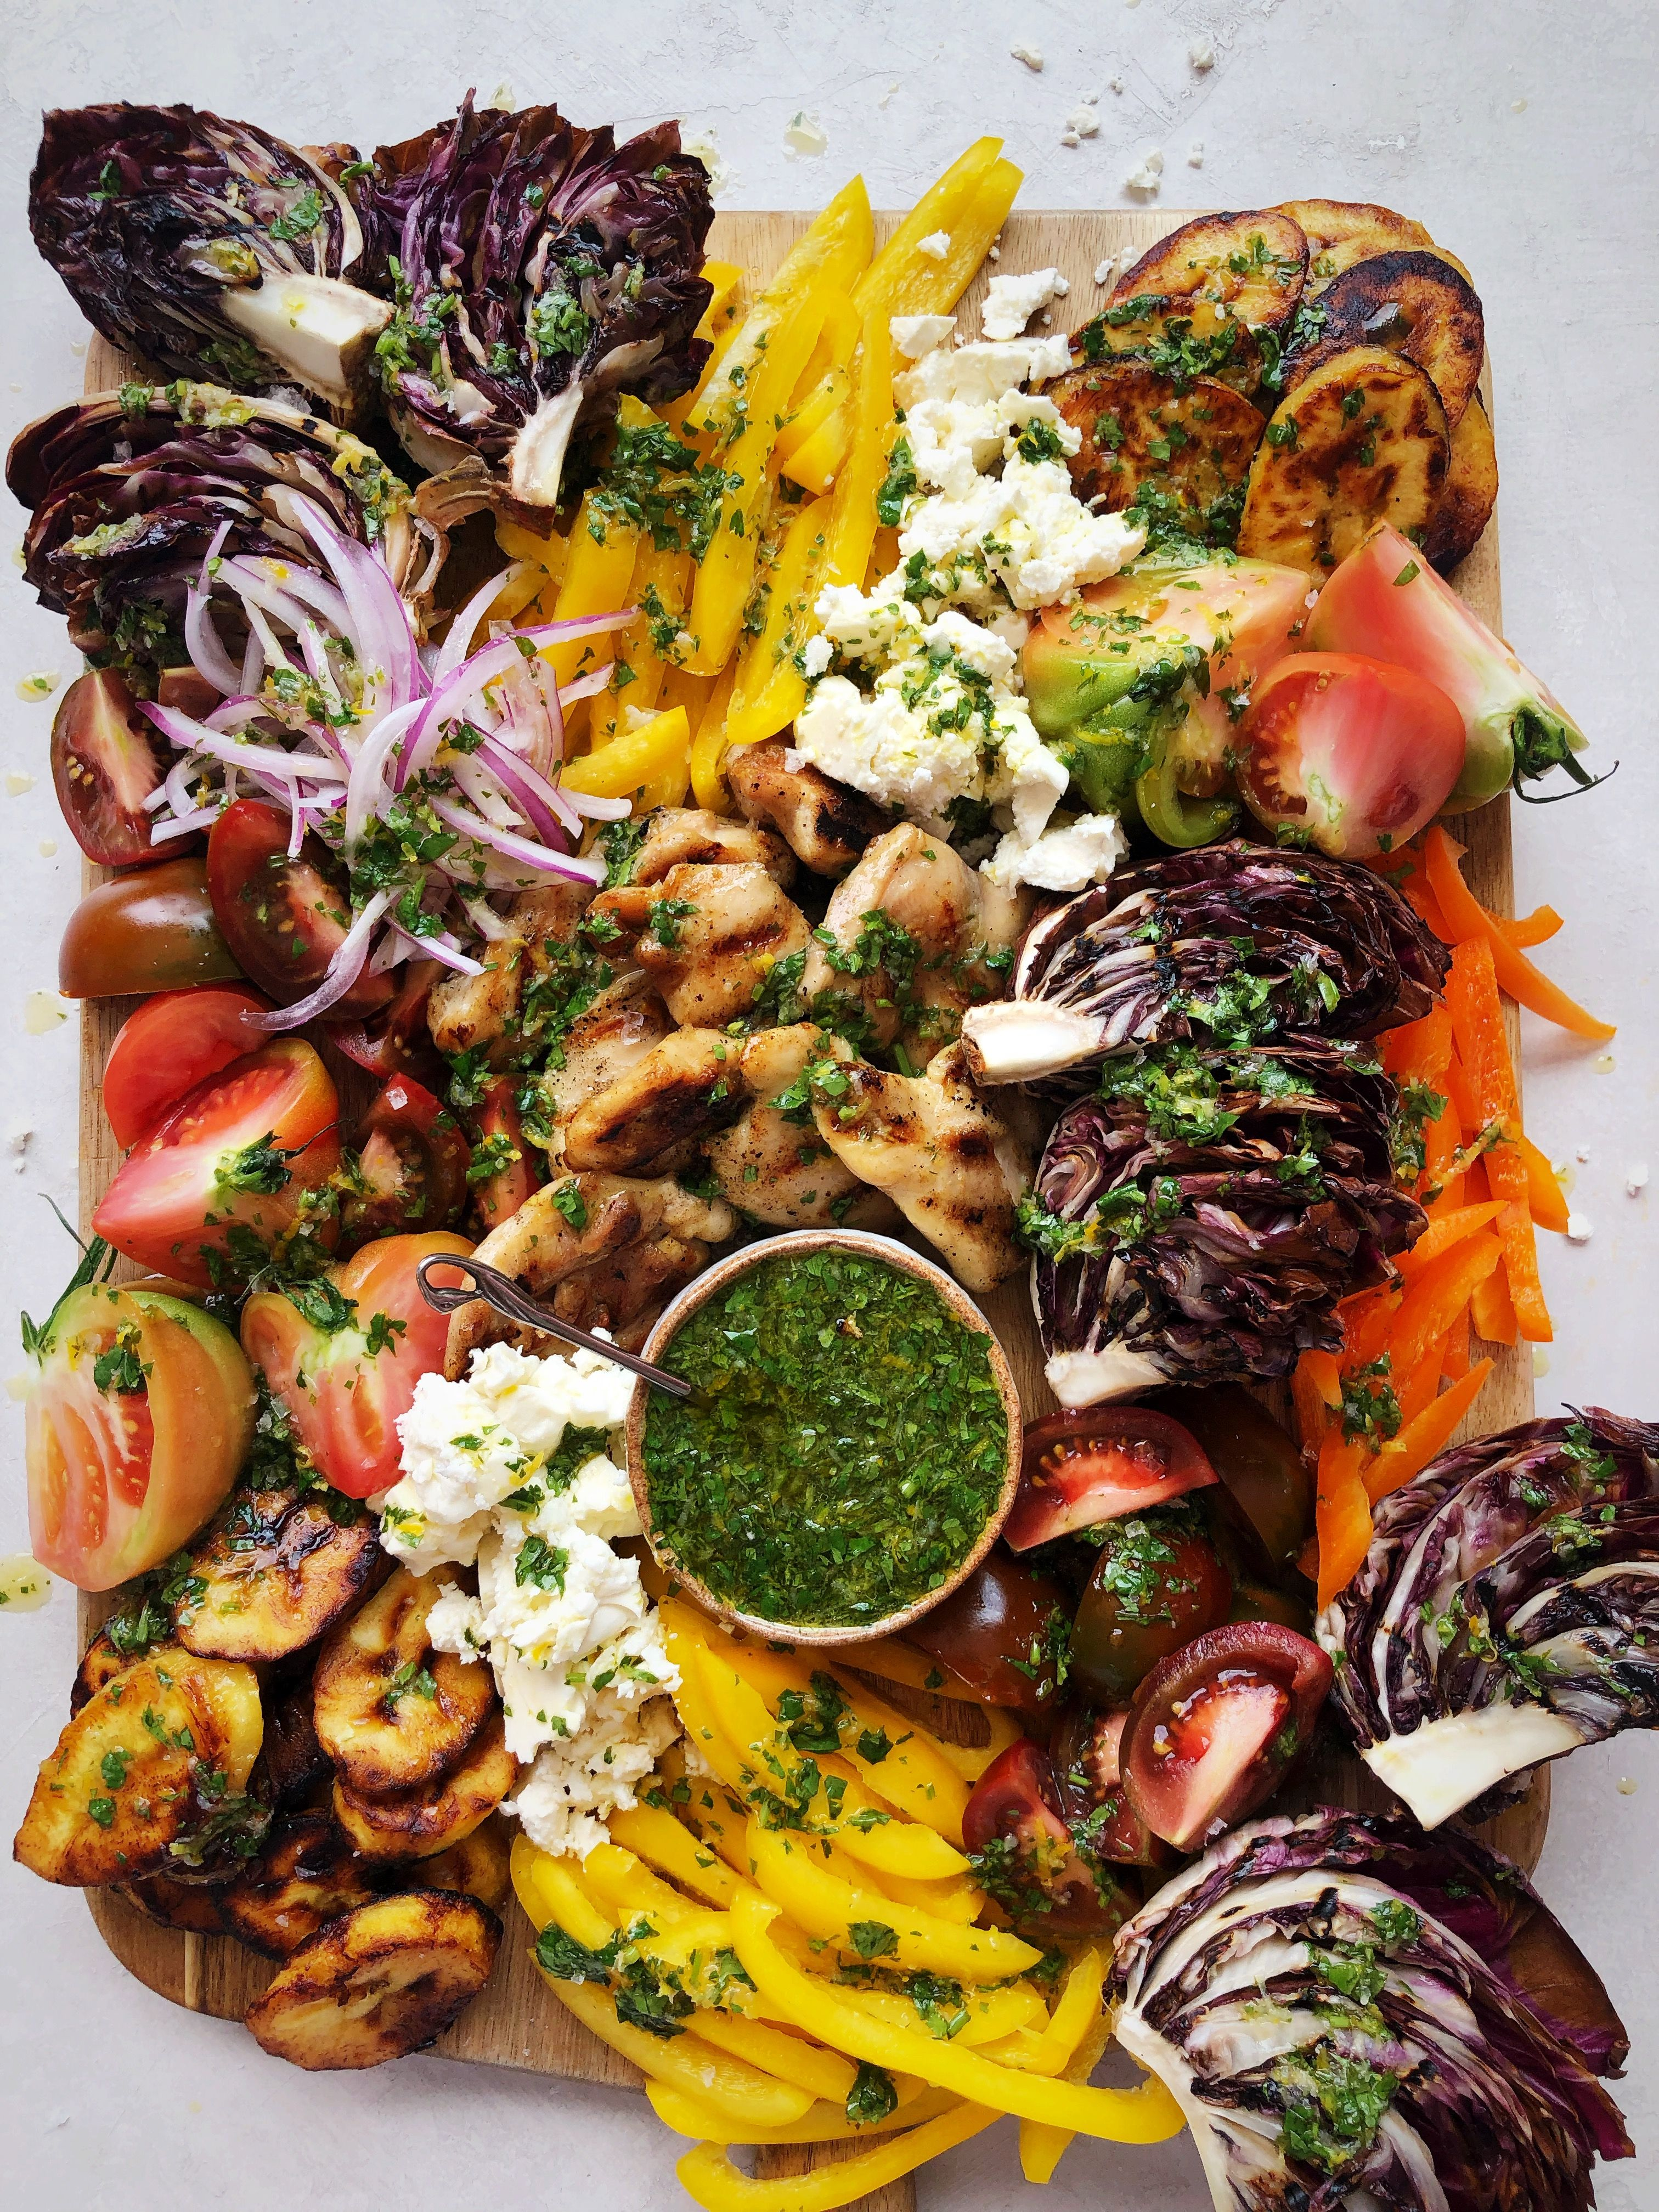 Jeweled Salad Party Platter with Radicchio, Bell Peppers, Feta and Chicken